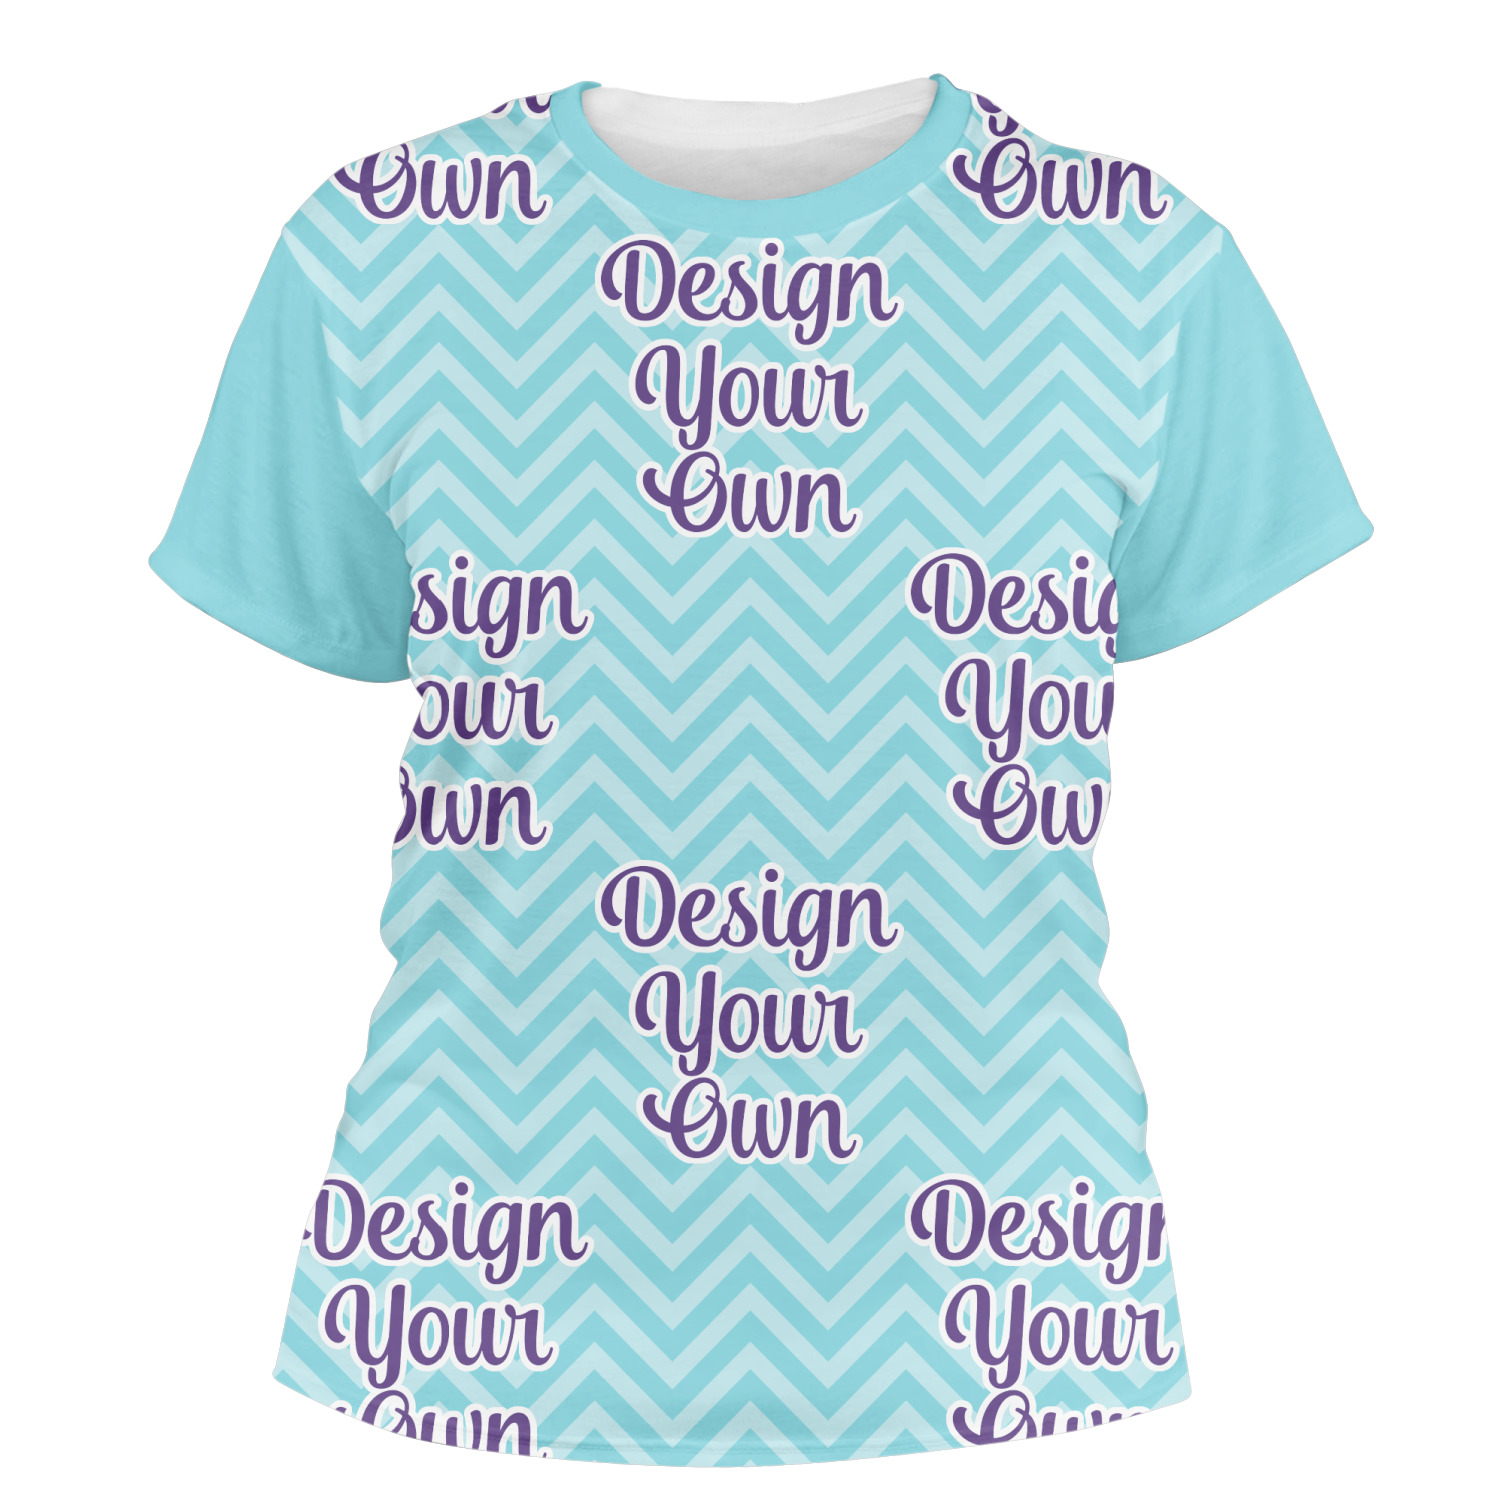 design your own personalized women u0026 39 s crew t-shirt